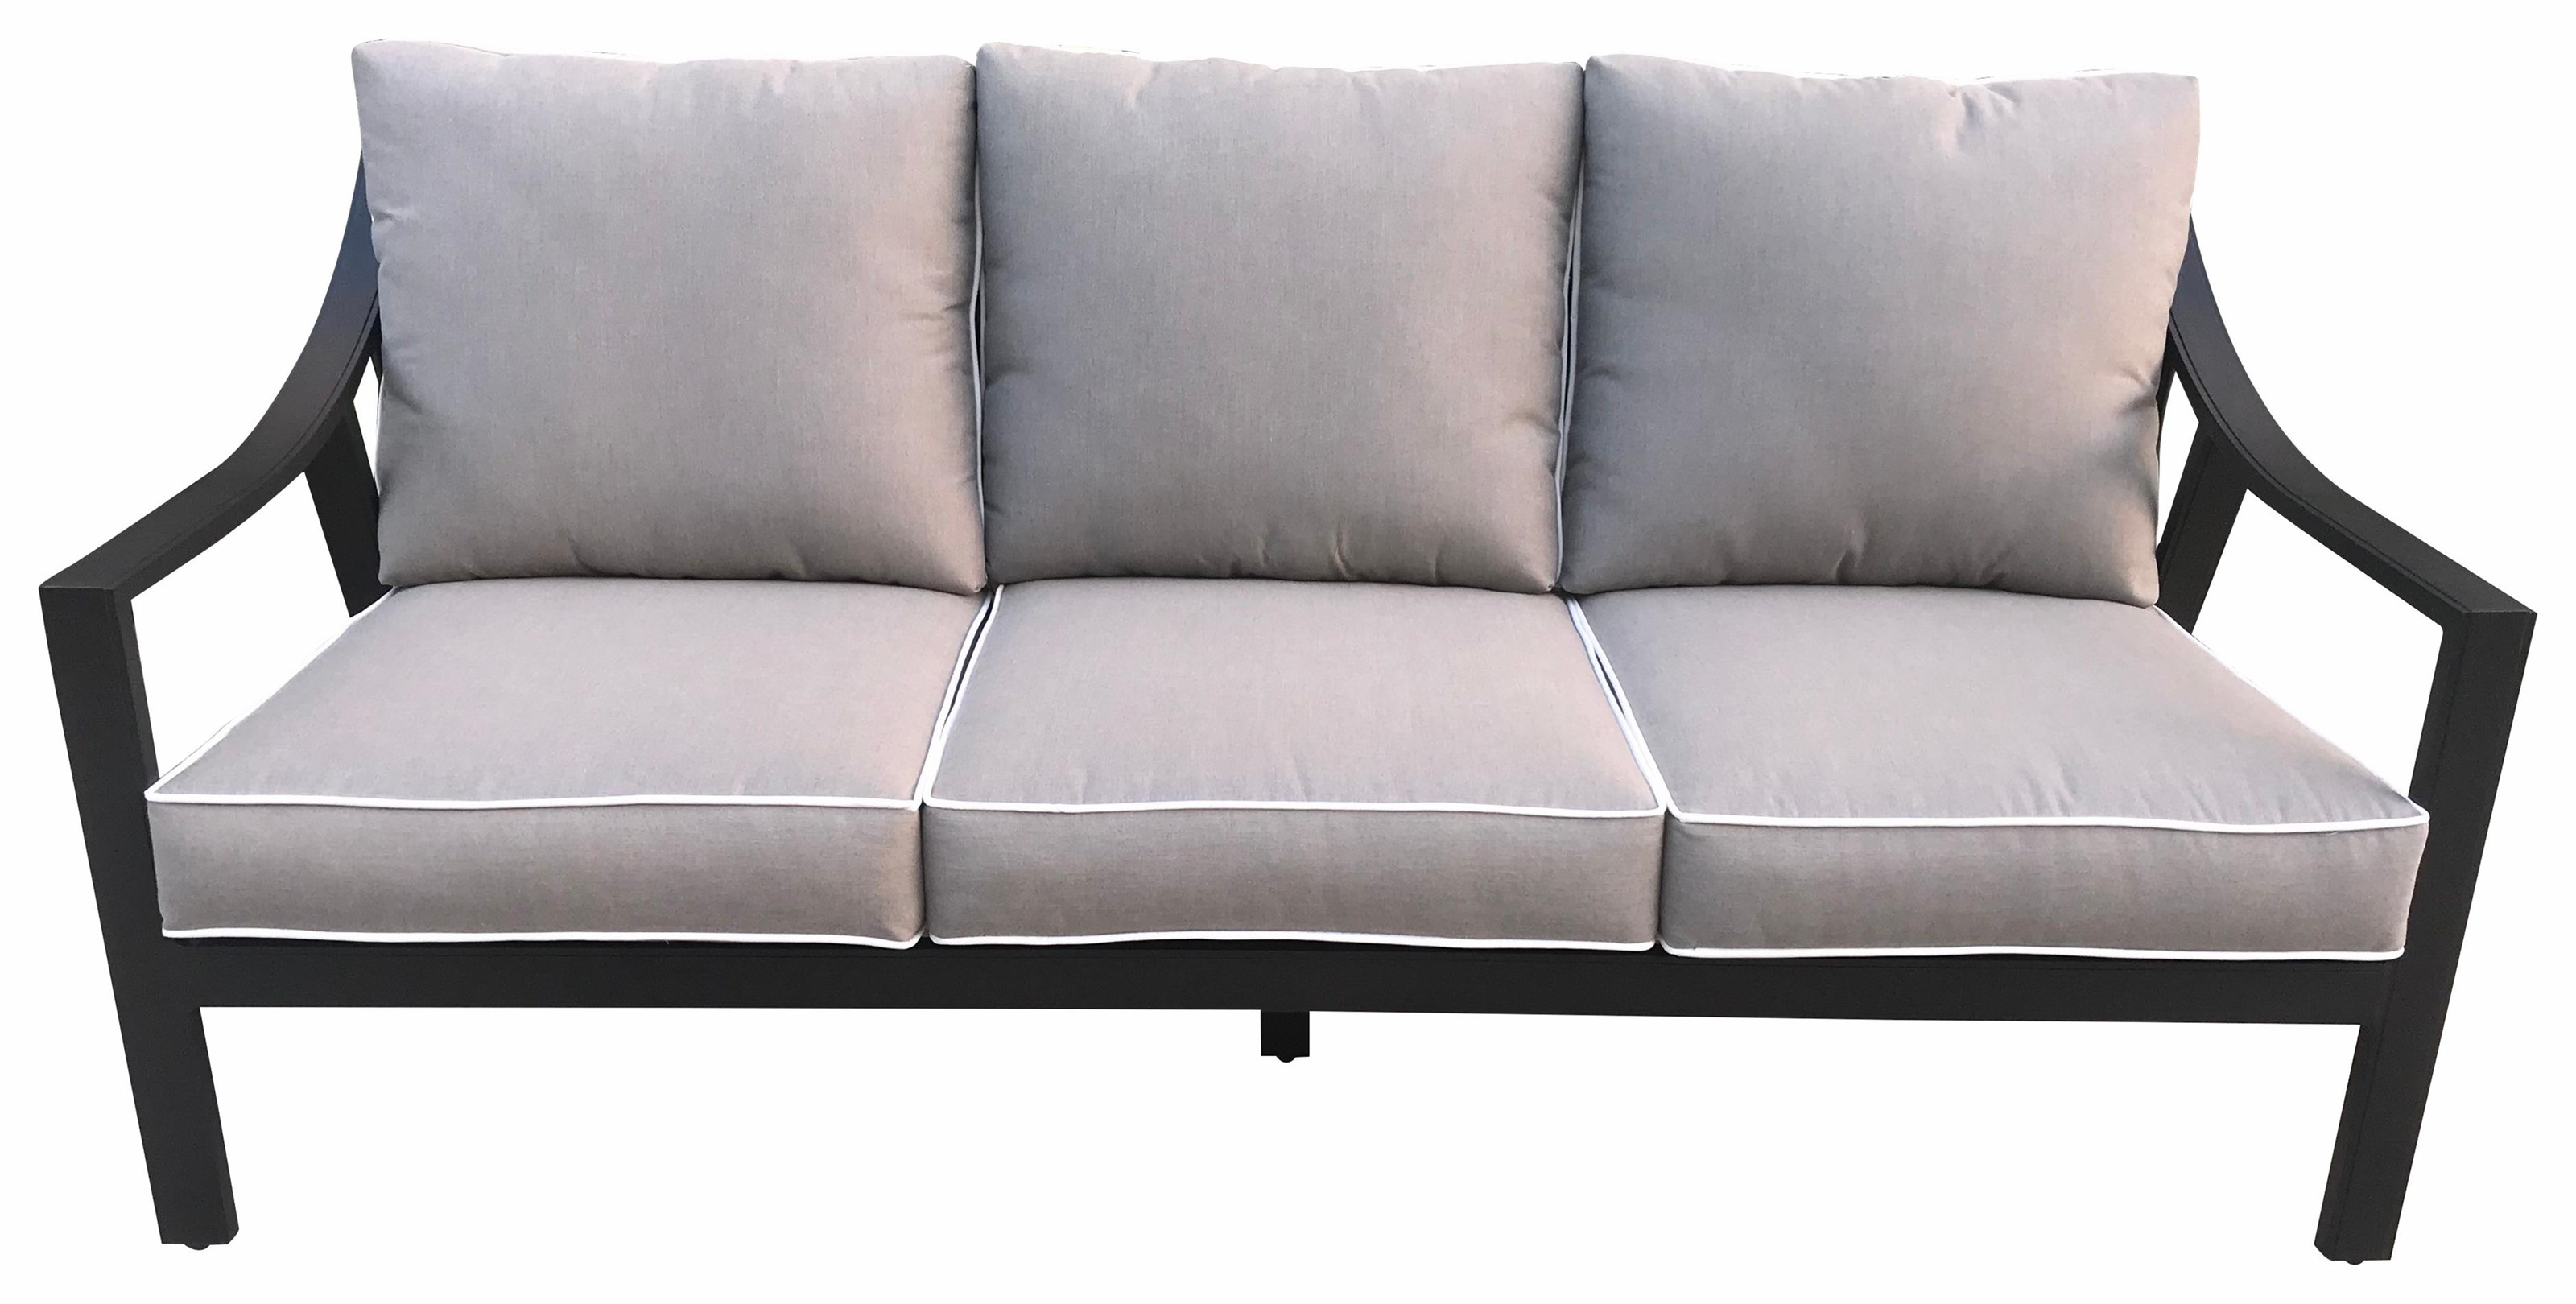 Genoa Outdoor Sofa by GatherCraft at Darvin Furniture